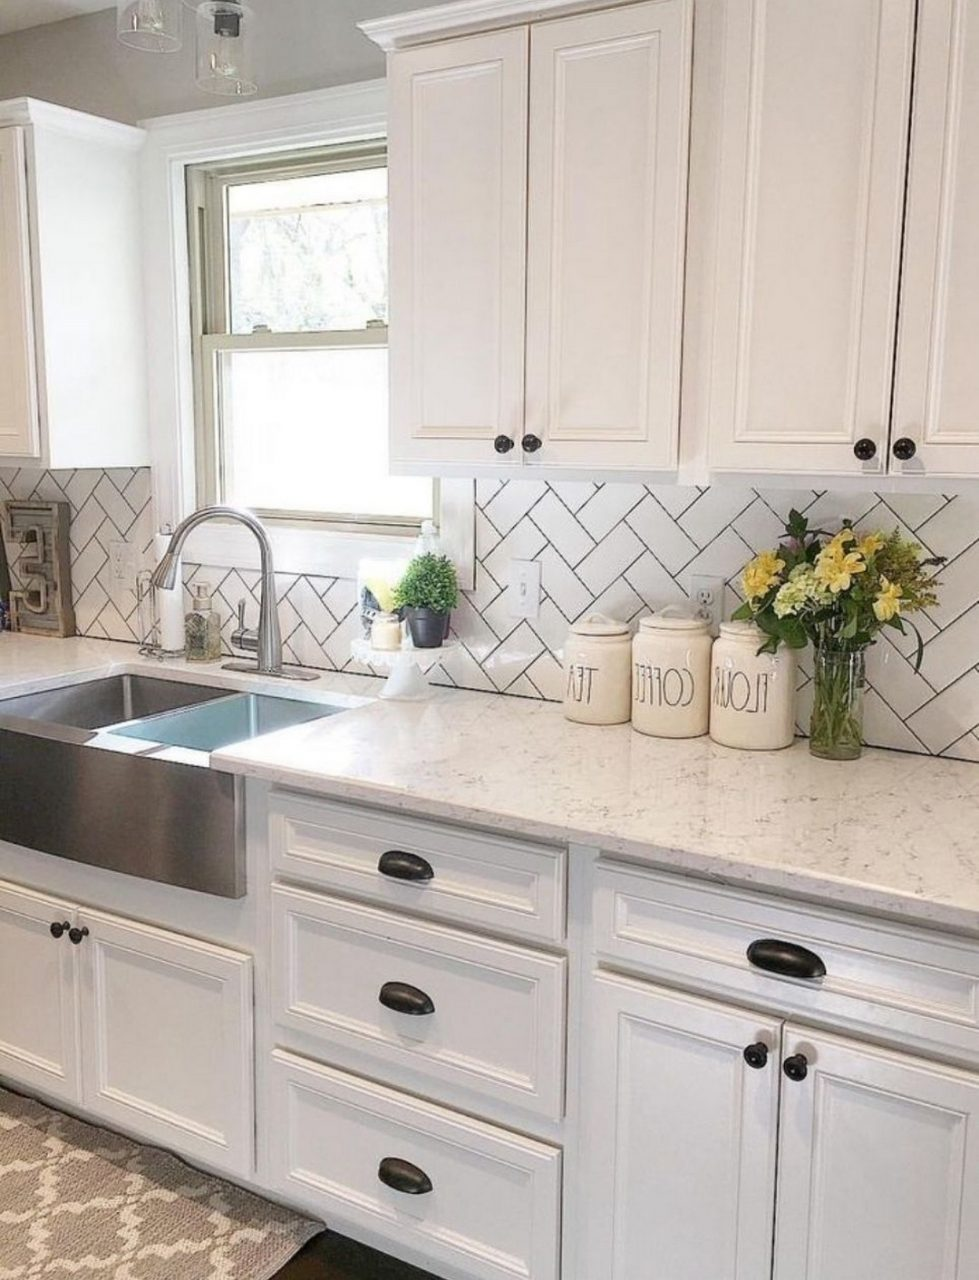 23 White Kitchen Stainless Farmhouse Sink Herringbone Backsplash